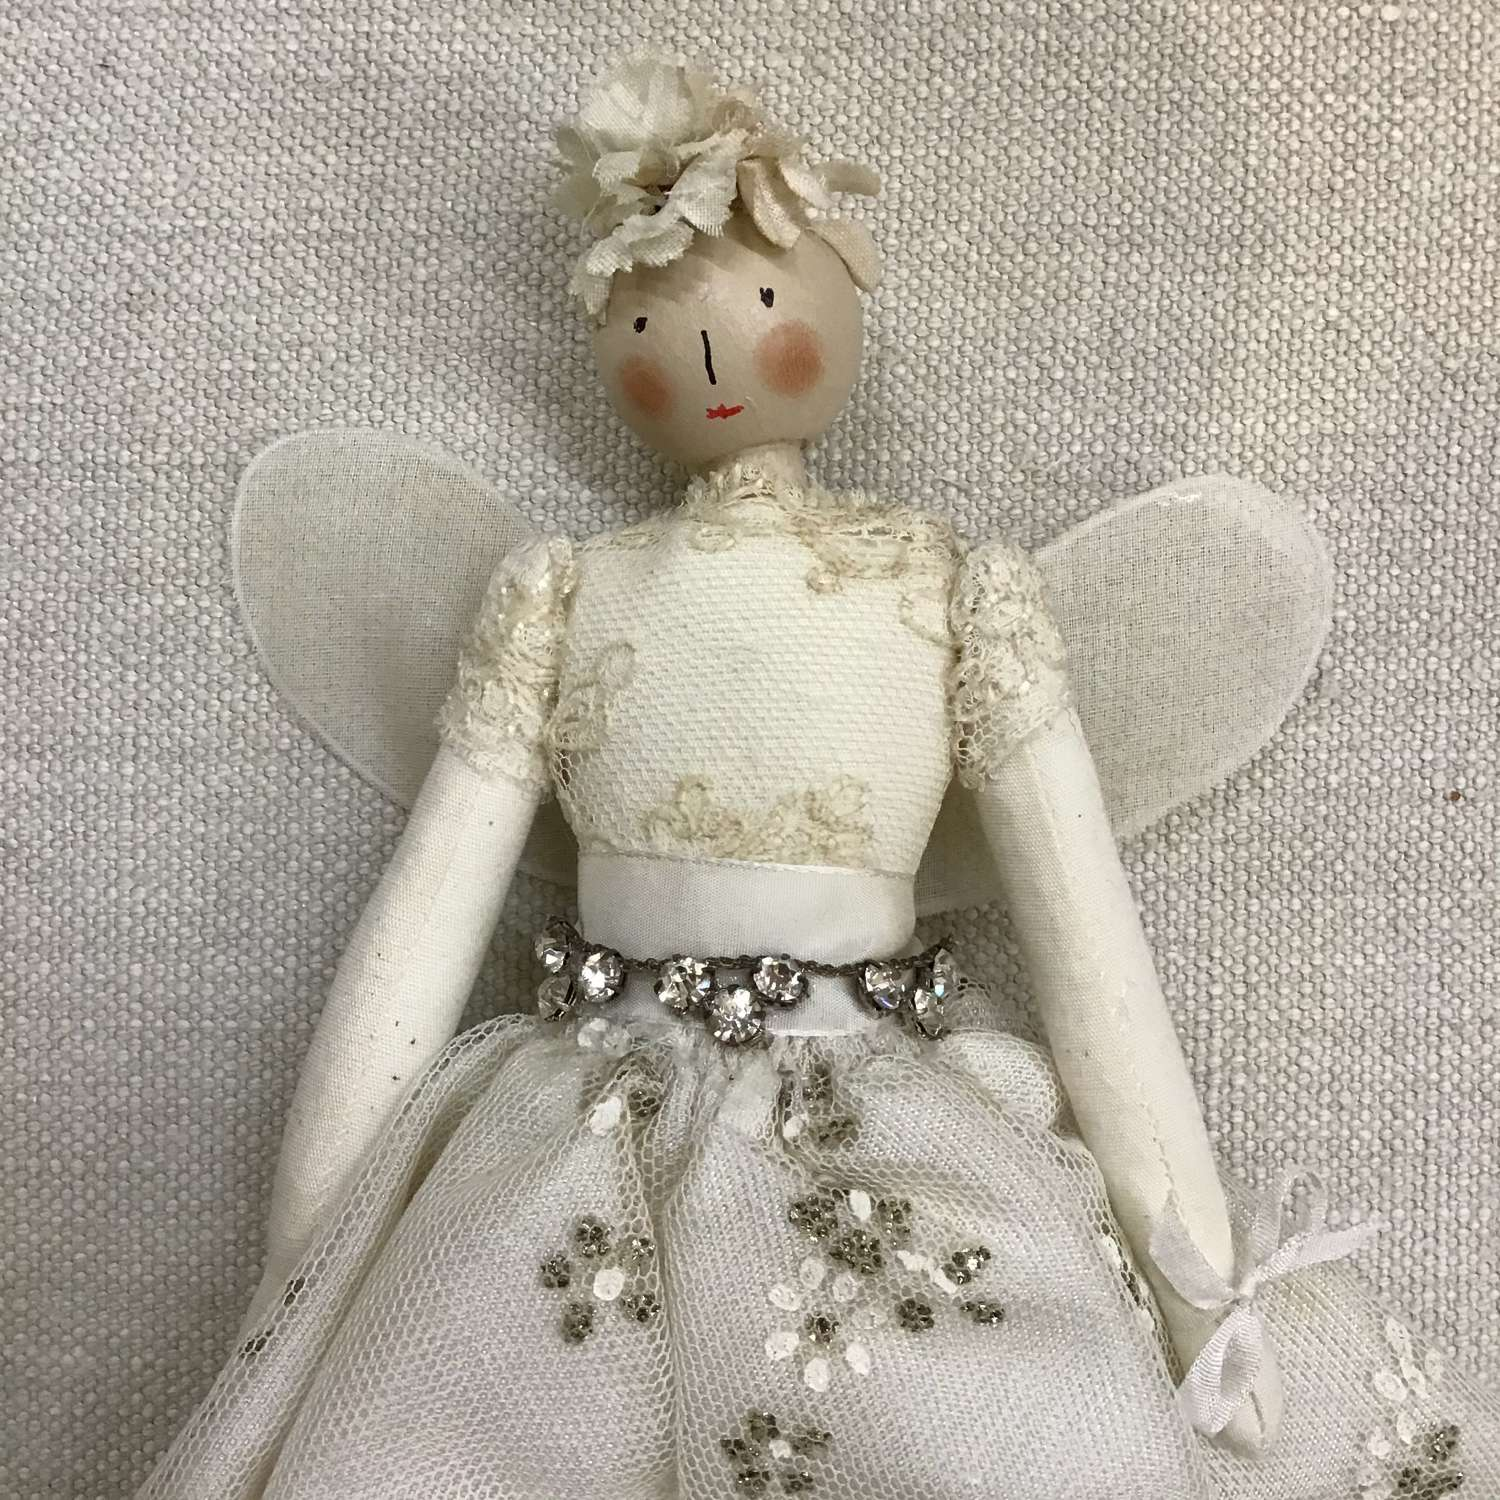 Handcrafted cloth fairy doll using vintage fabrics and trims